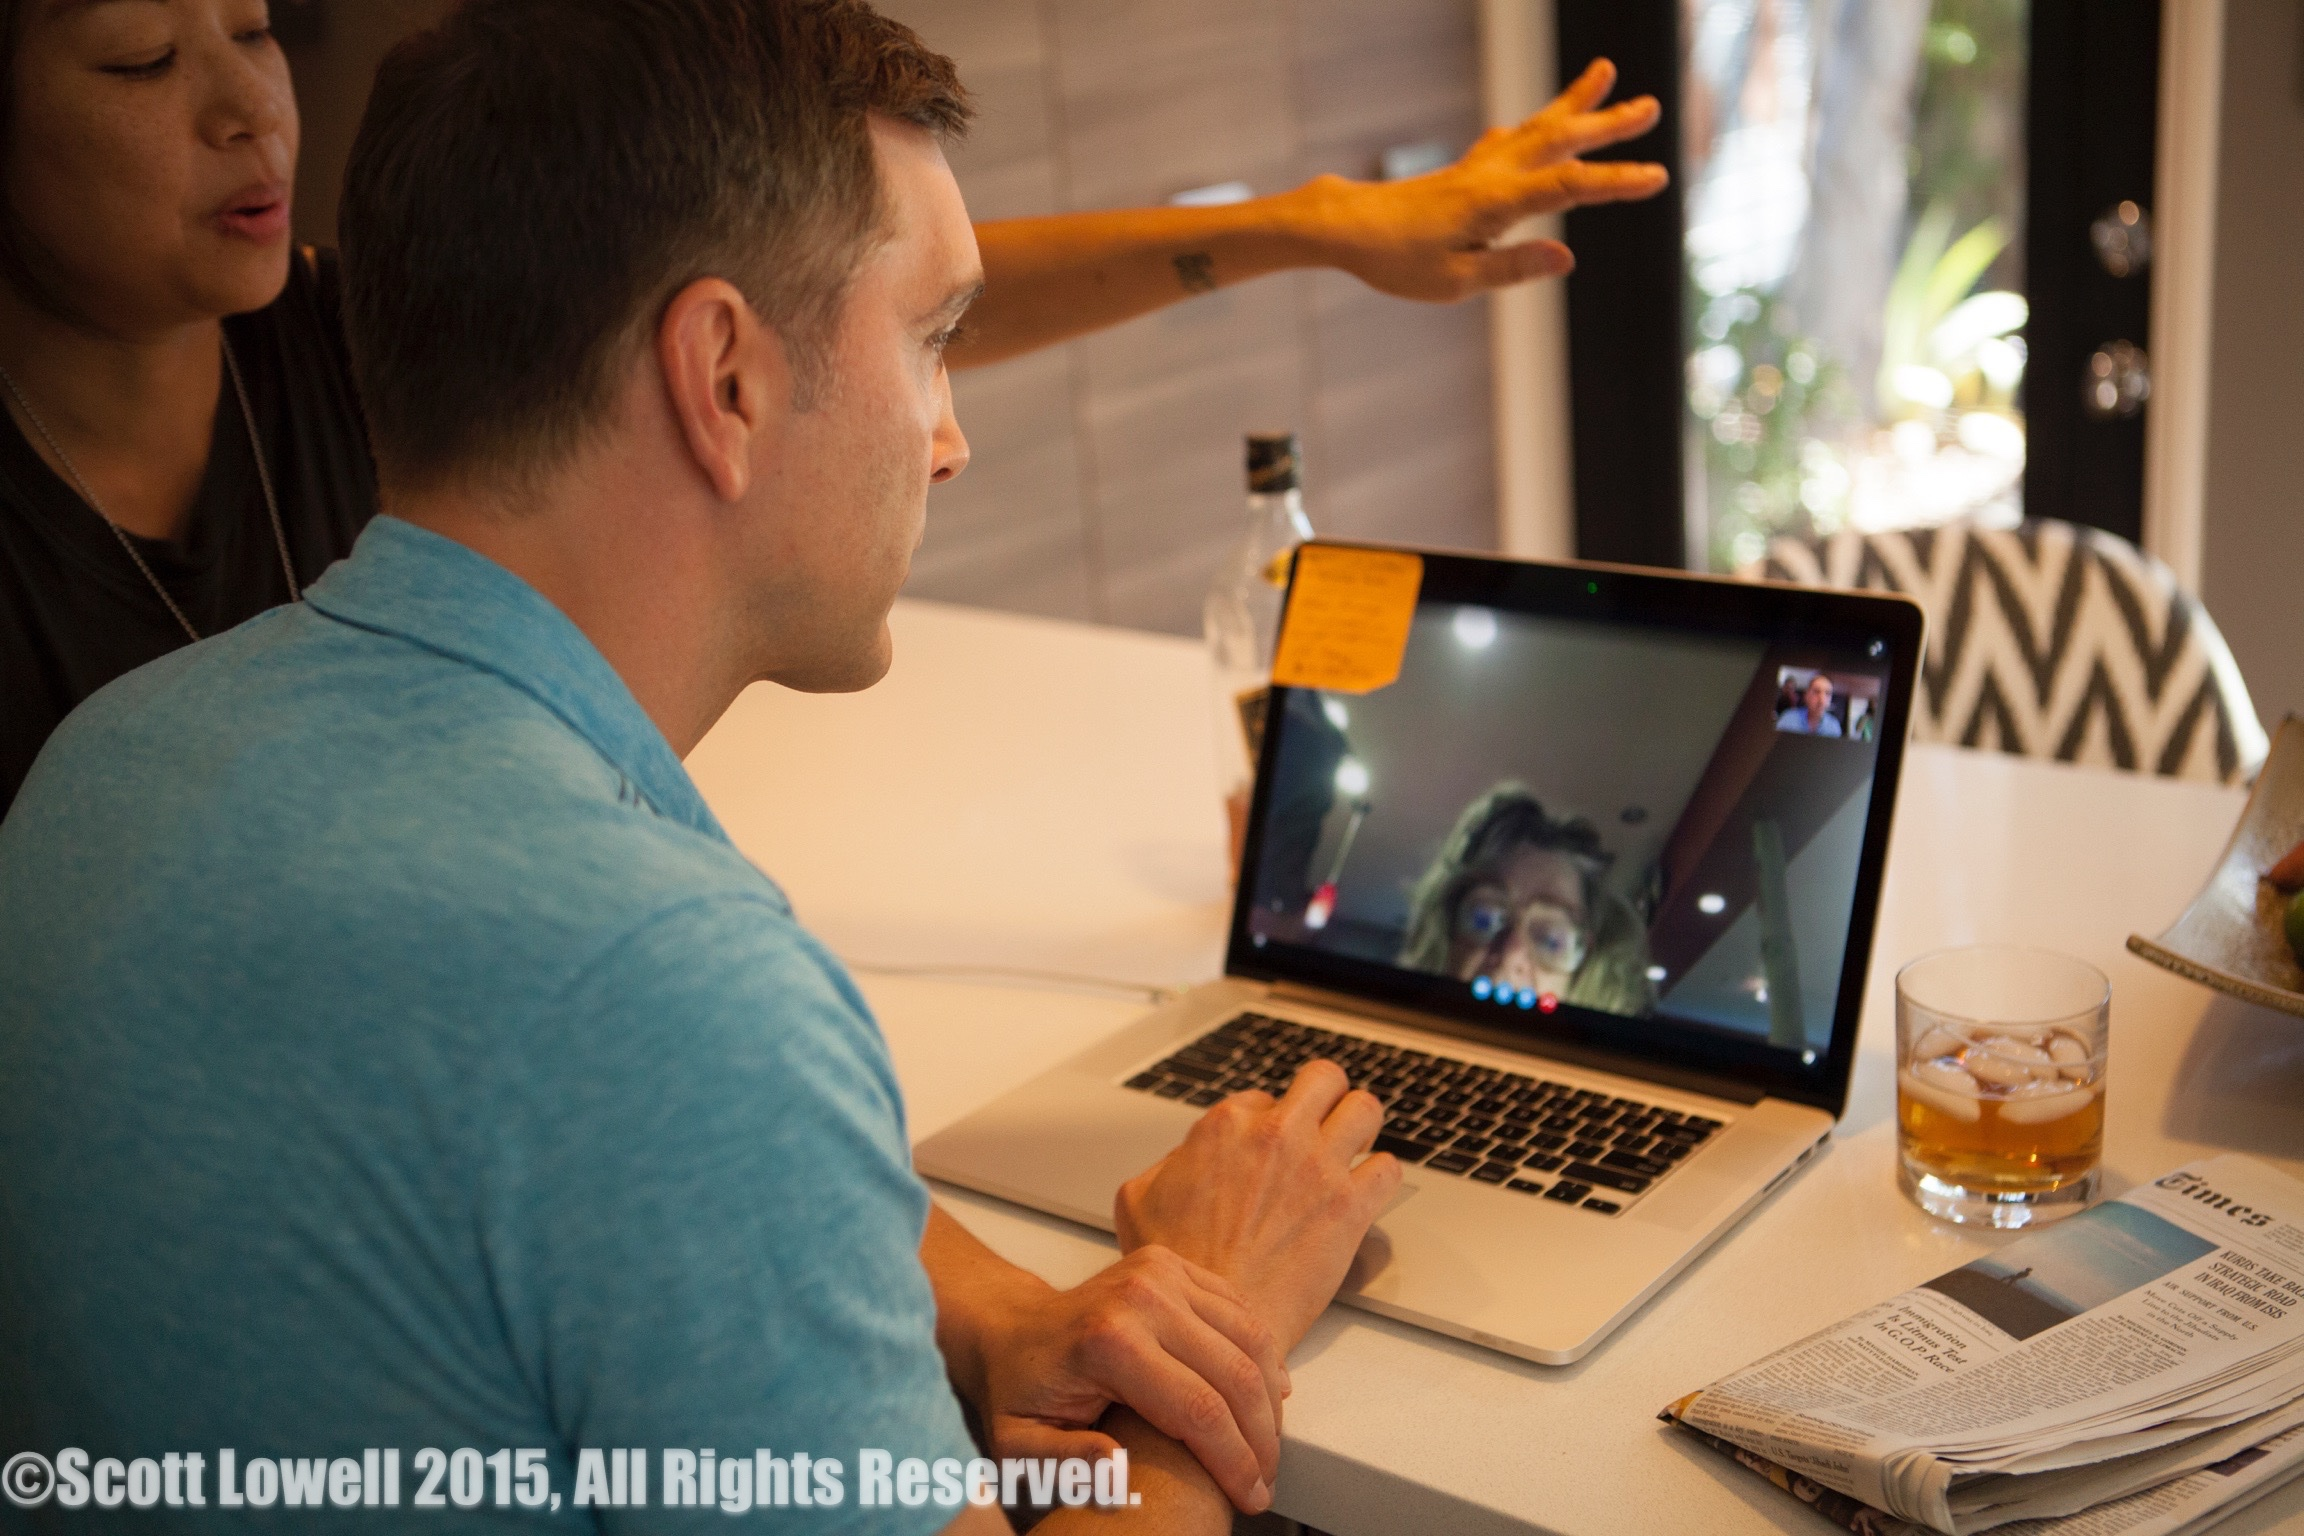 """11/13/15 Filming at """"Scott & Lisa's"""" Home. Video chat with Mom L to R: Shirley Petchprapa (D.P.), Scott Lowell, (on computer) Vana O'Brien (""""Lois"""")"""